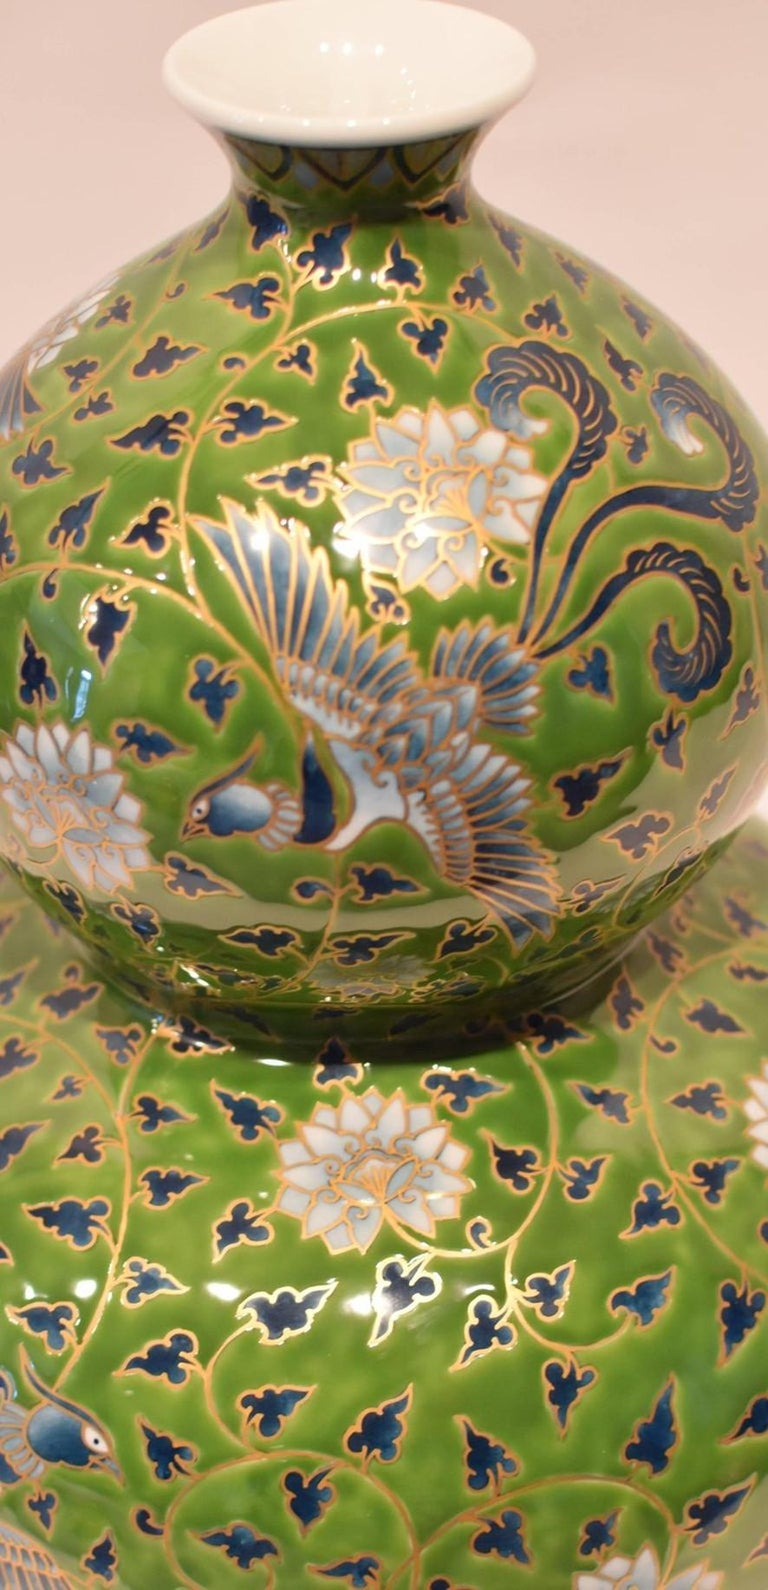 Japanese Large Green Contemporary Gilded Imari Porcelain Vase by Master Artist For Sale 1